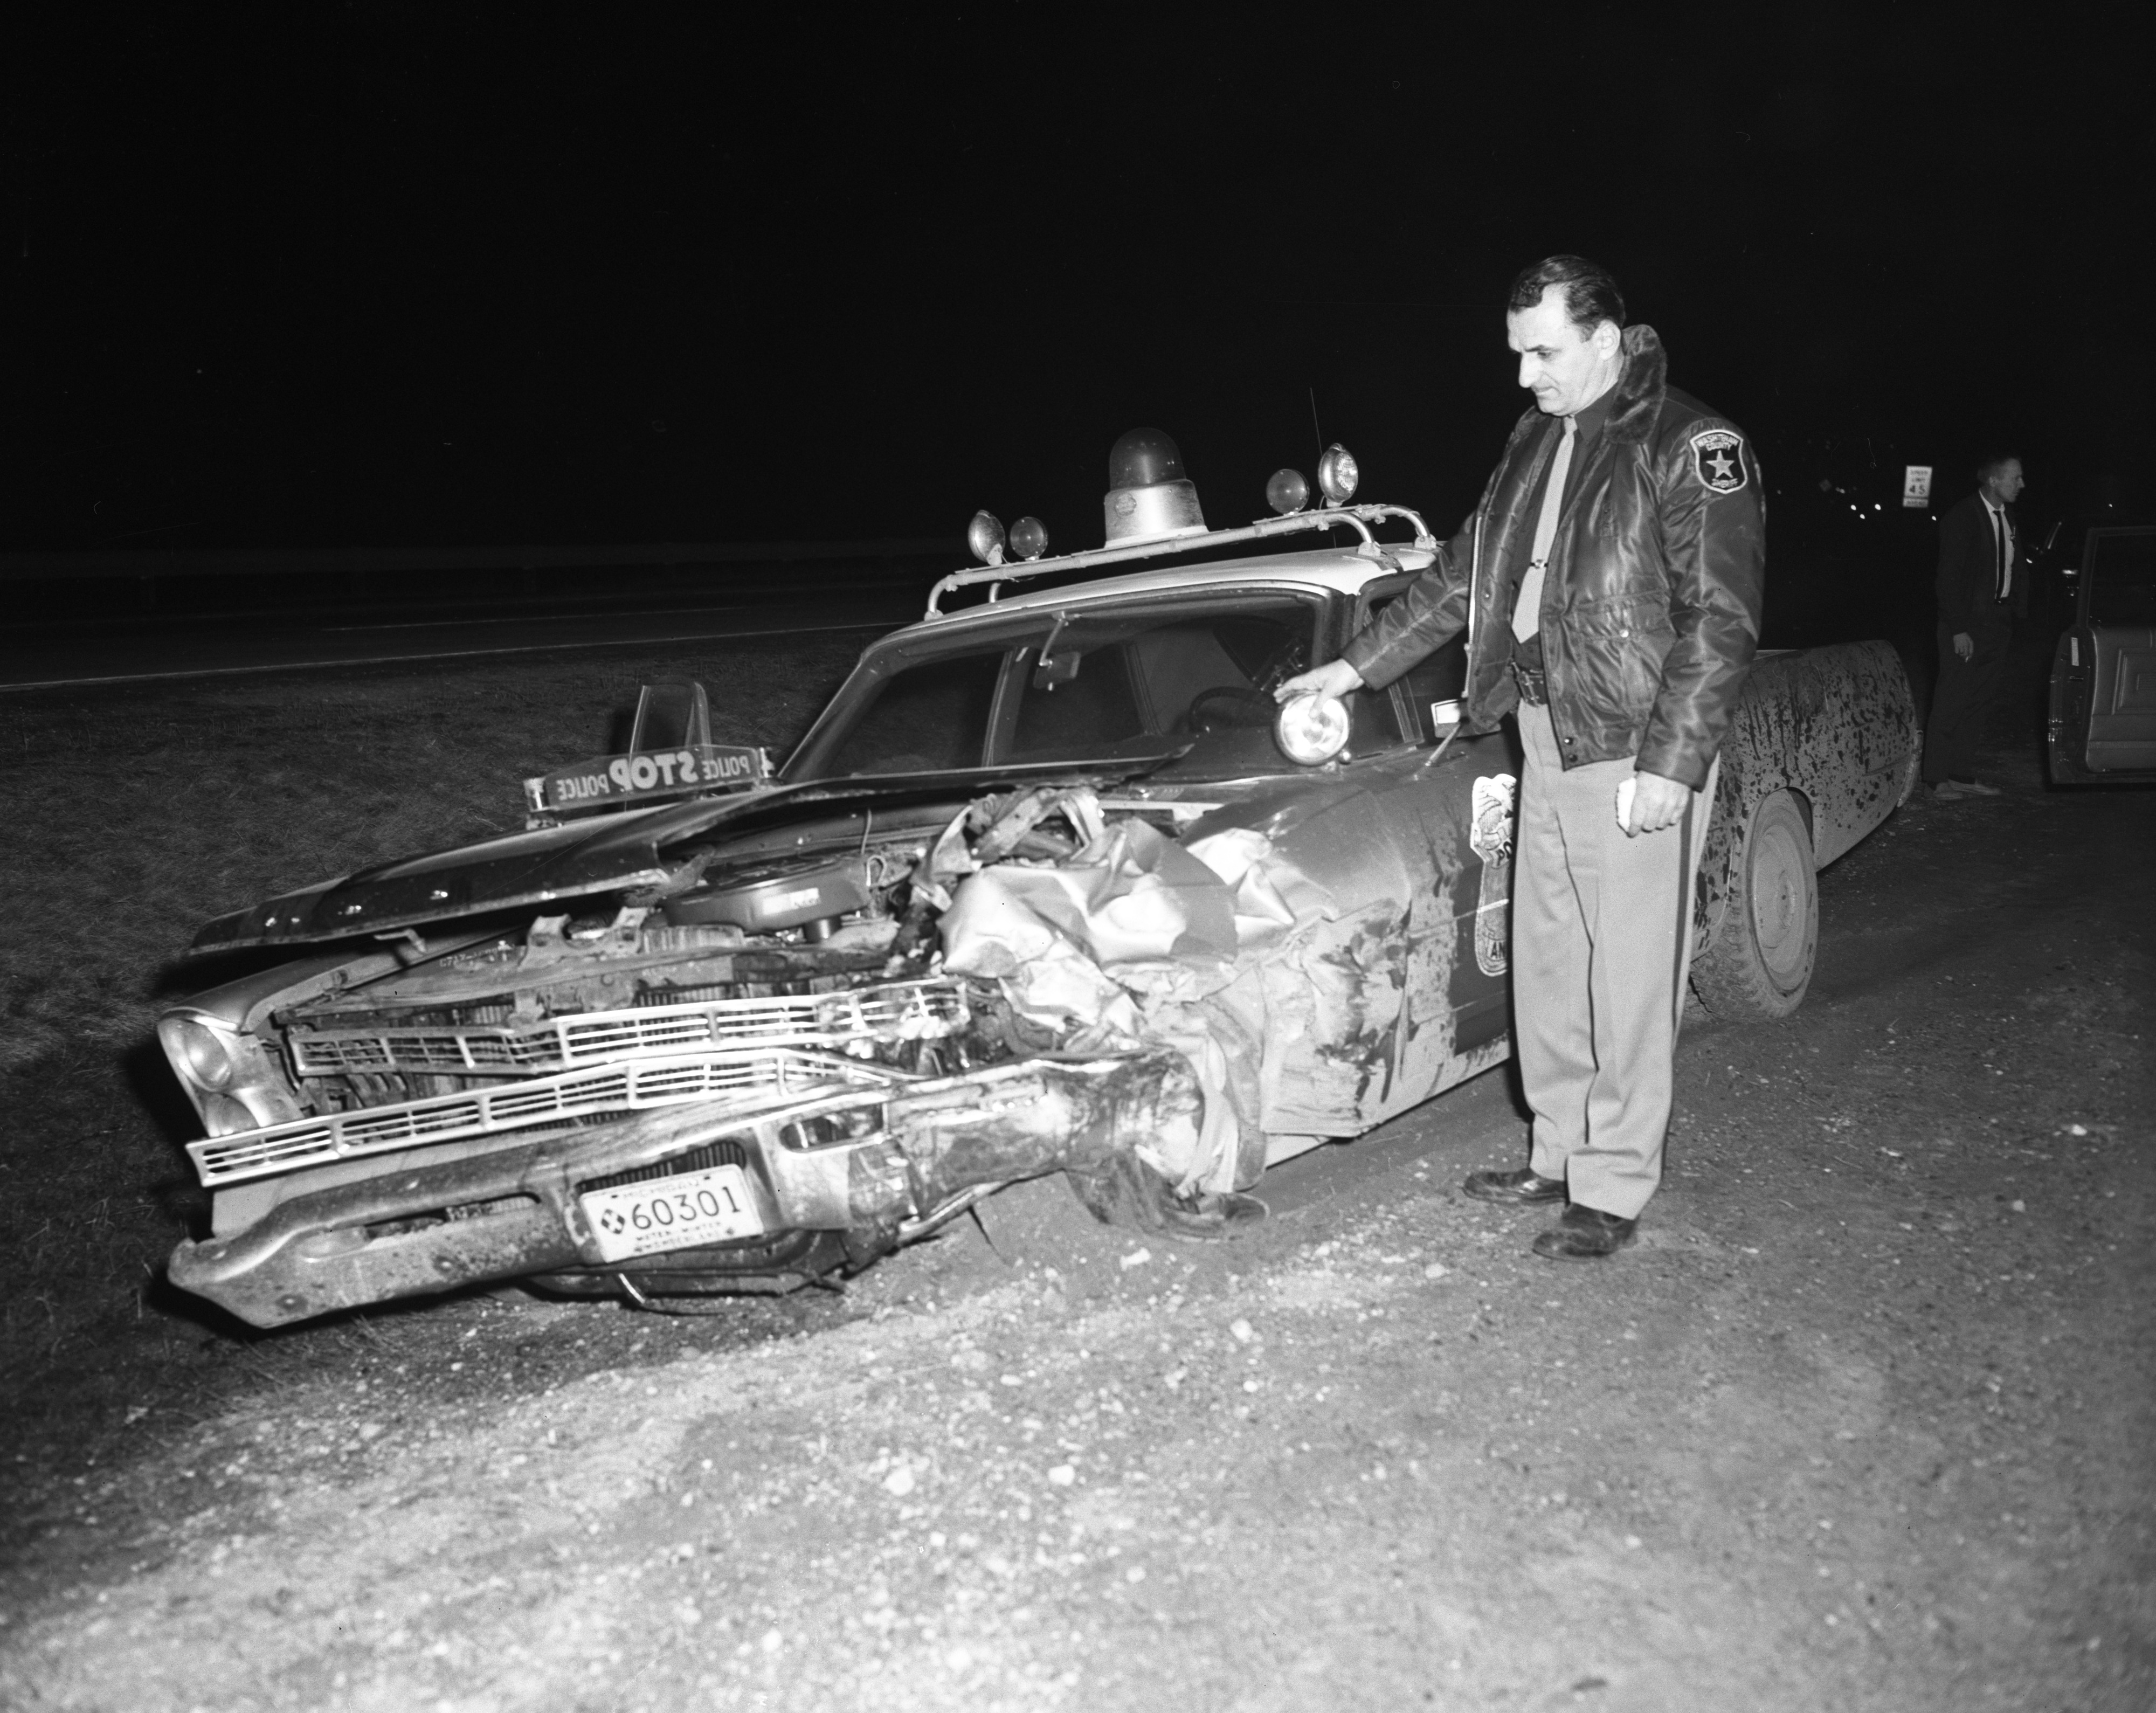 Sheriff's Squad Car Wrecked Assisting Ann Arbor Police In Robbery Chase, March 1967 image